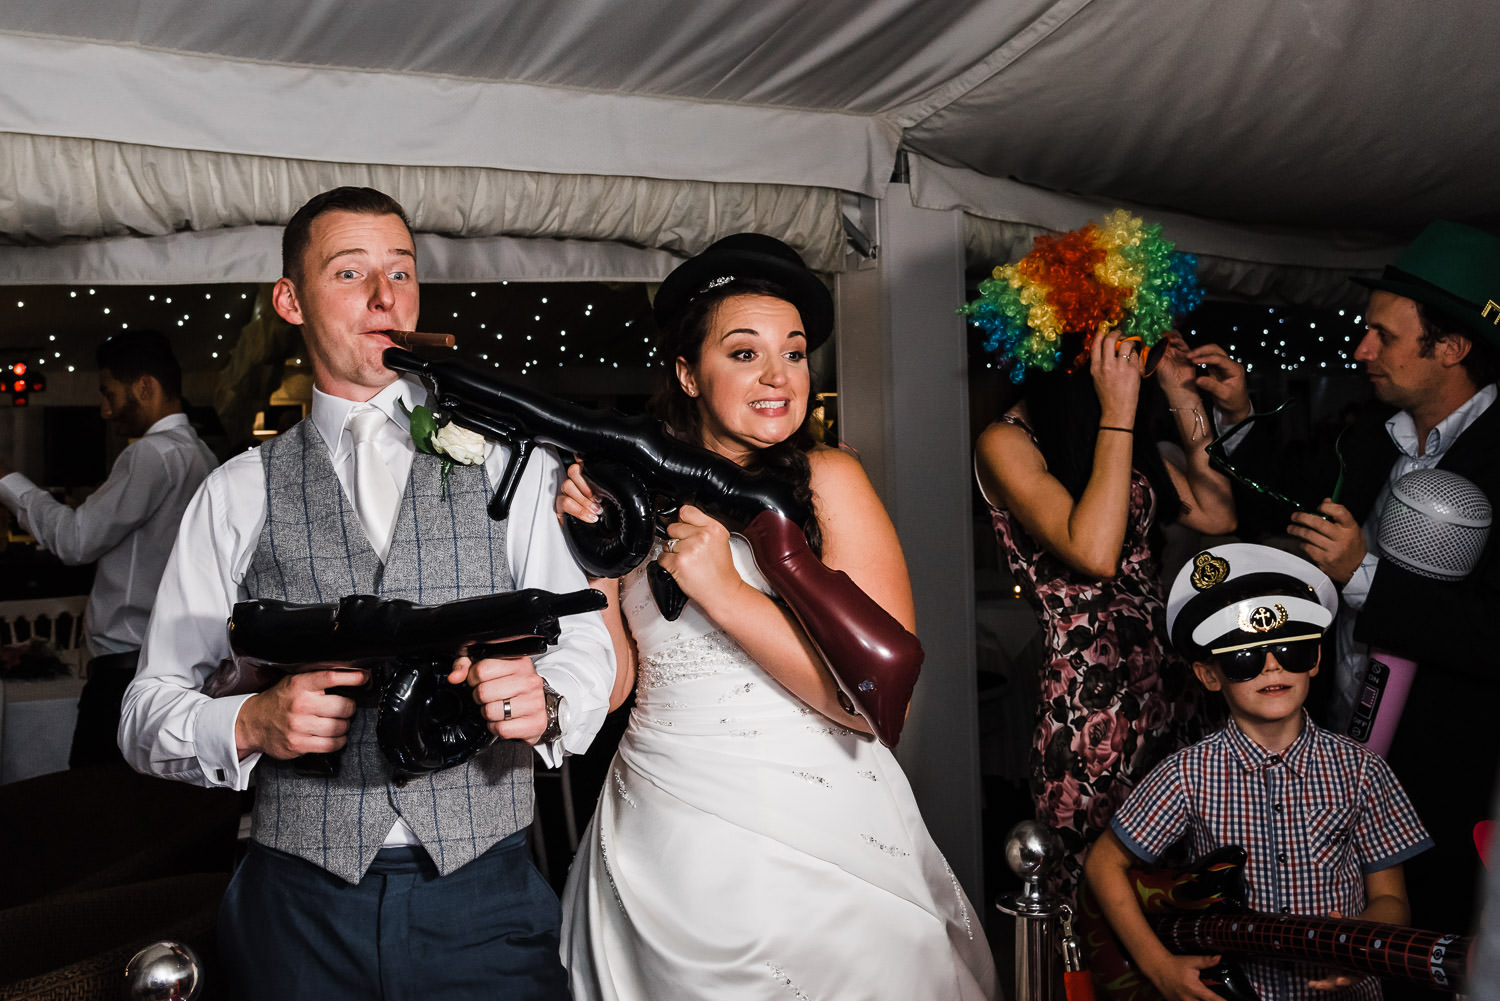 Bride and groom enjoy their photobooth during their wedding party at Moxhull Hall in Sutton Coldfield. The bride got ready at the Belfry Hotel and Resort.